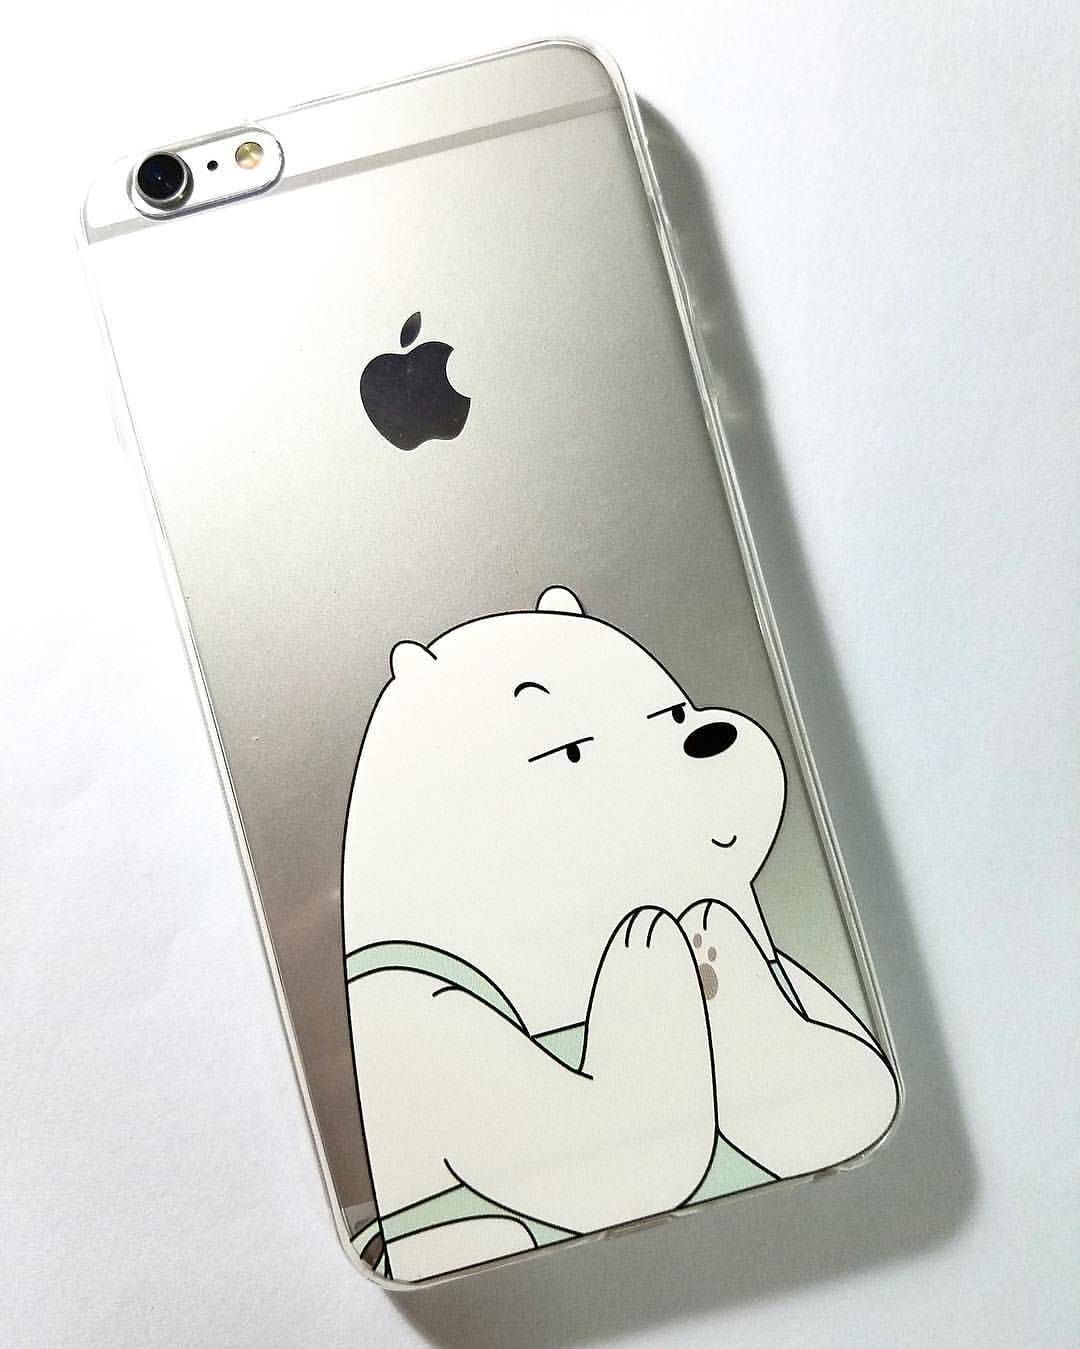 759d862638 We Bare Bears Phone Case!❄ Photo from: @gonezoomjerry #iphone #case # webarebears